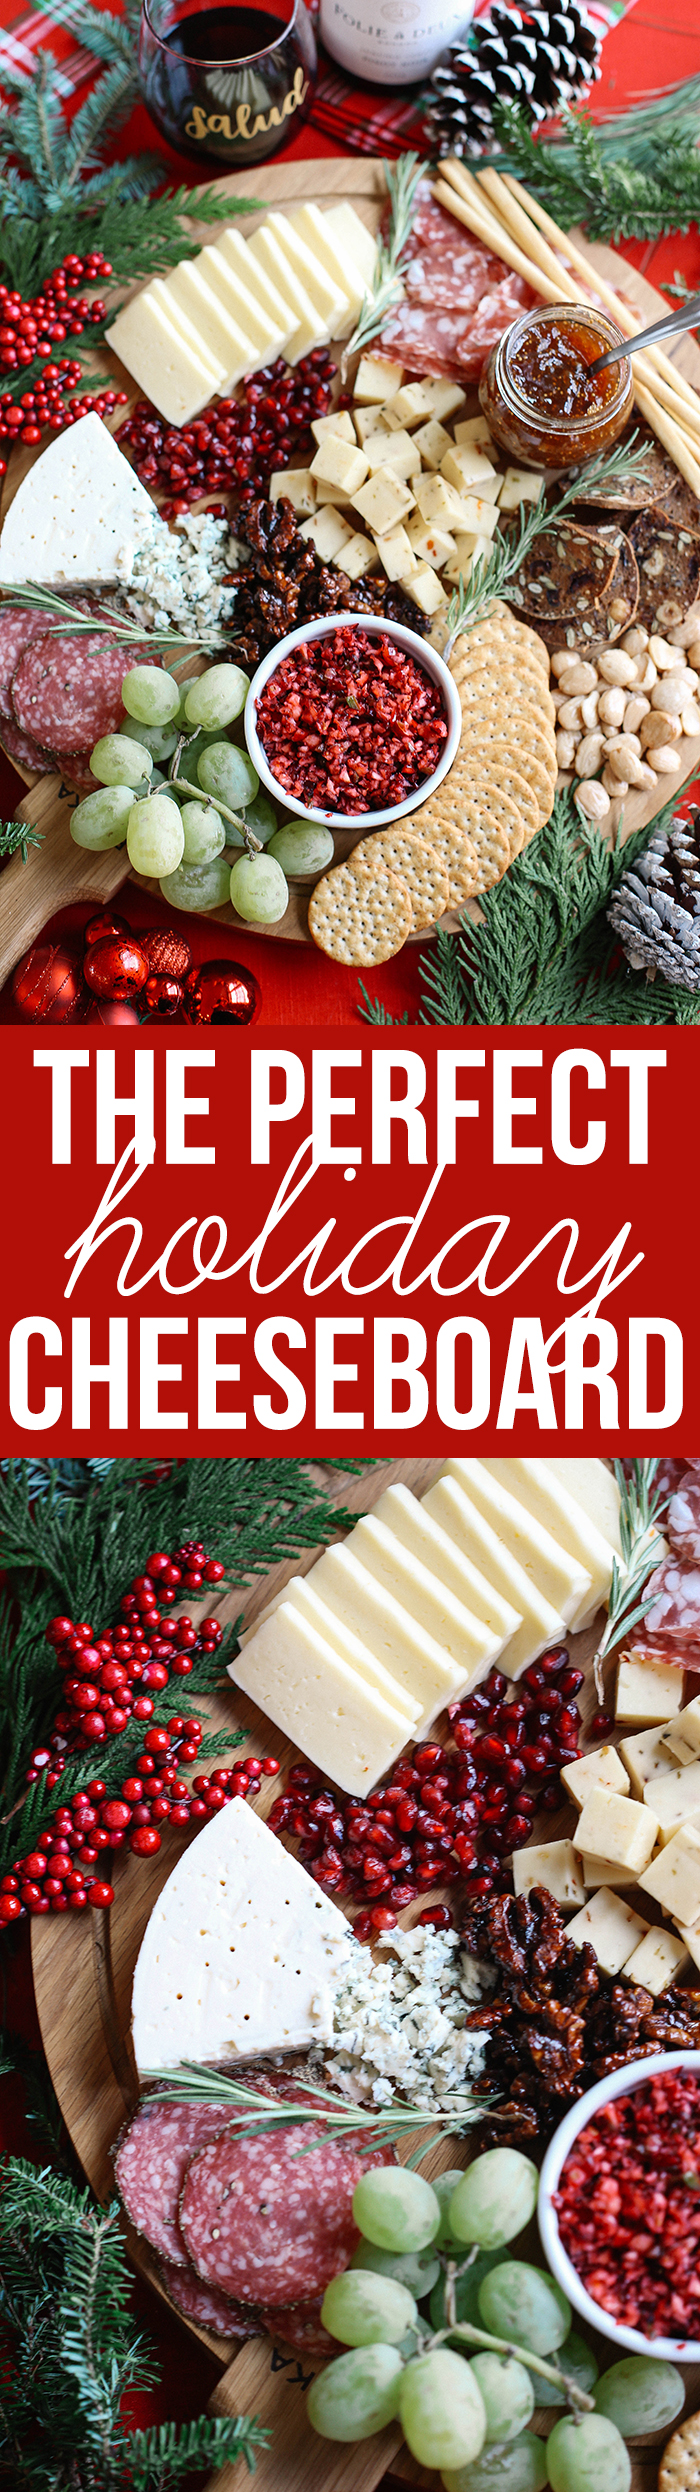 Learn how to create the perfect holiday cheese board in just five simple steps with an assortment of cheeses, meats, fruits, nuts, and a variety of spreads!